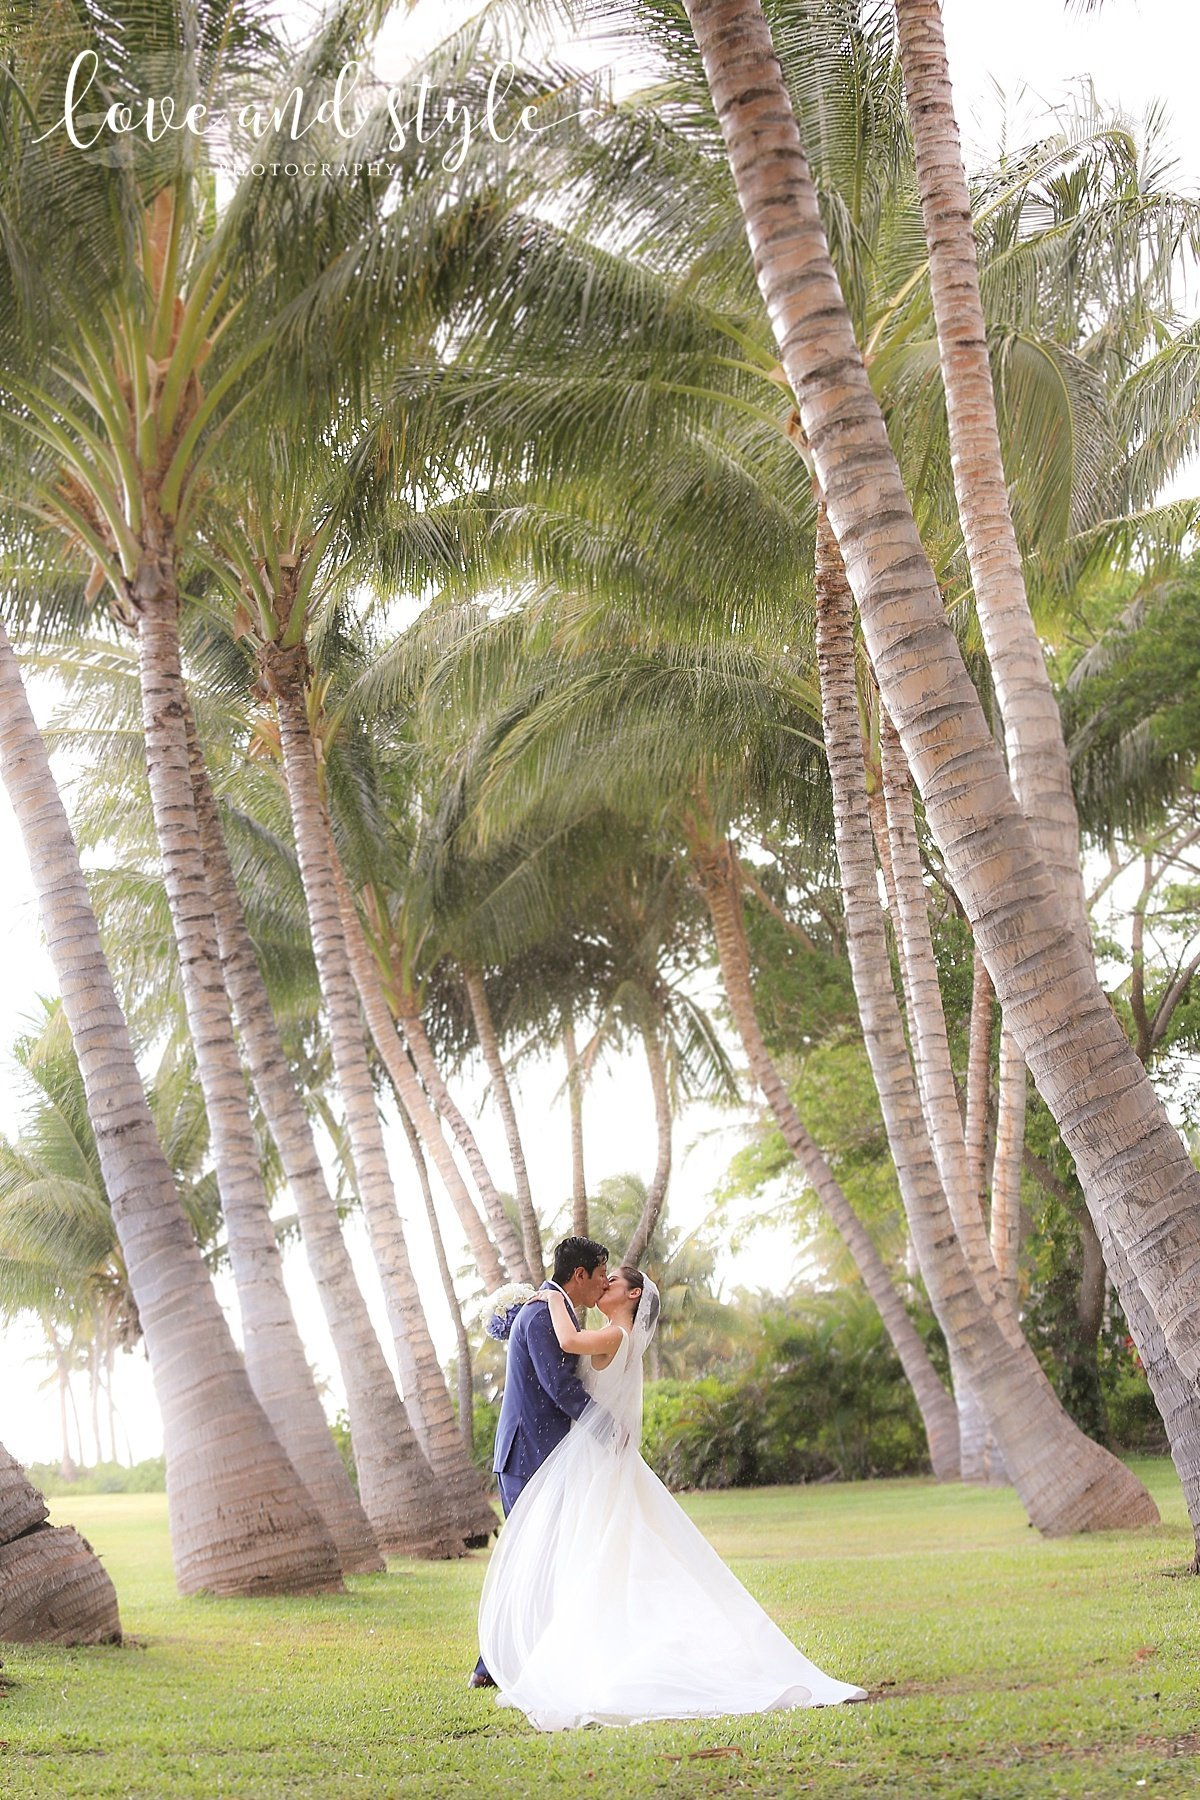 Sarasota-Bradenton Wedding Photography of bride and groom  kissing between palm trees in the rain